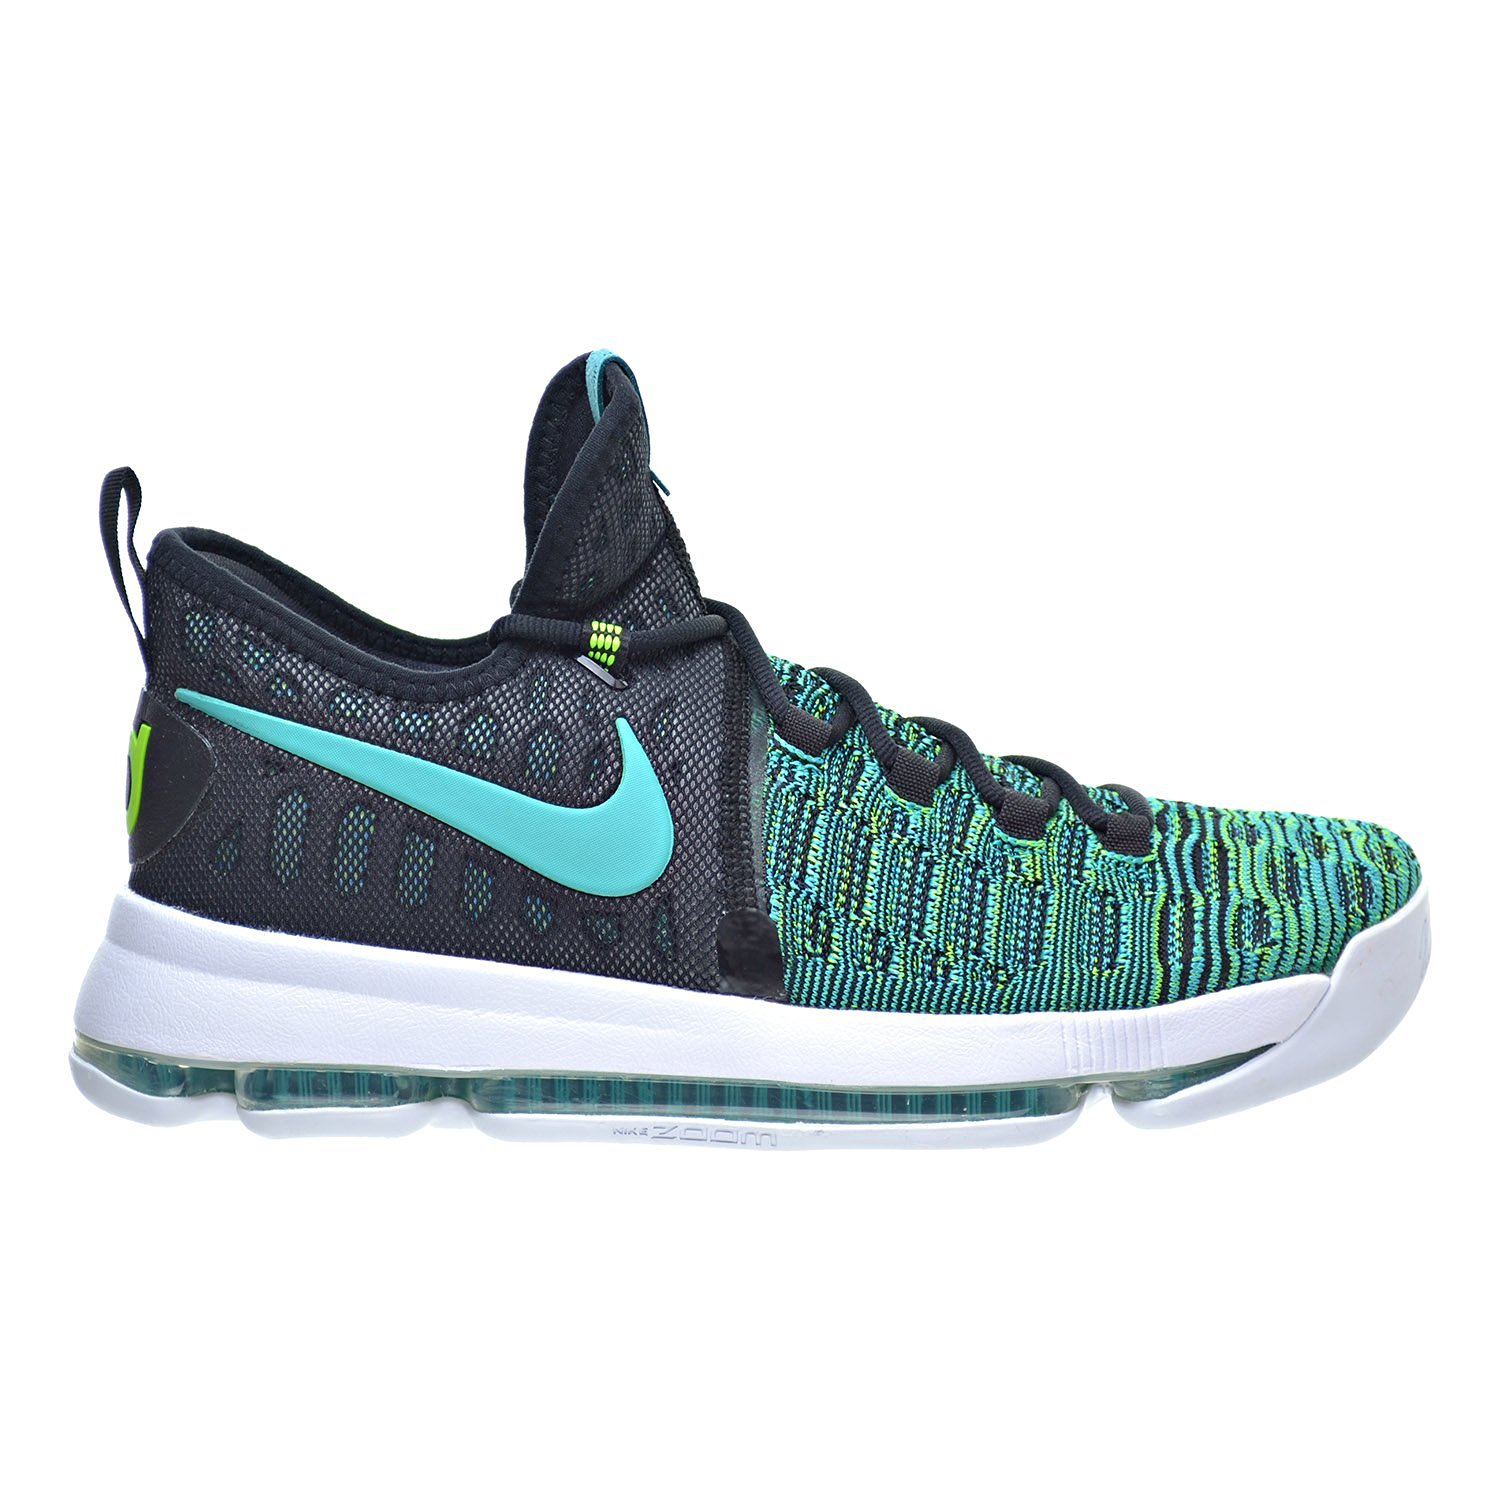 ef6ec3f09251 Get Quotations · Nike Zoom KD 9 Men s Basketball Shoes Clear Jade Black  843392-300